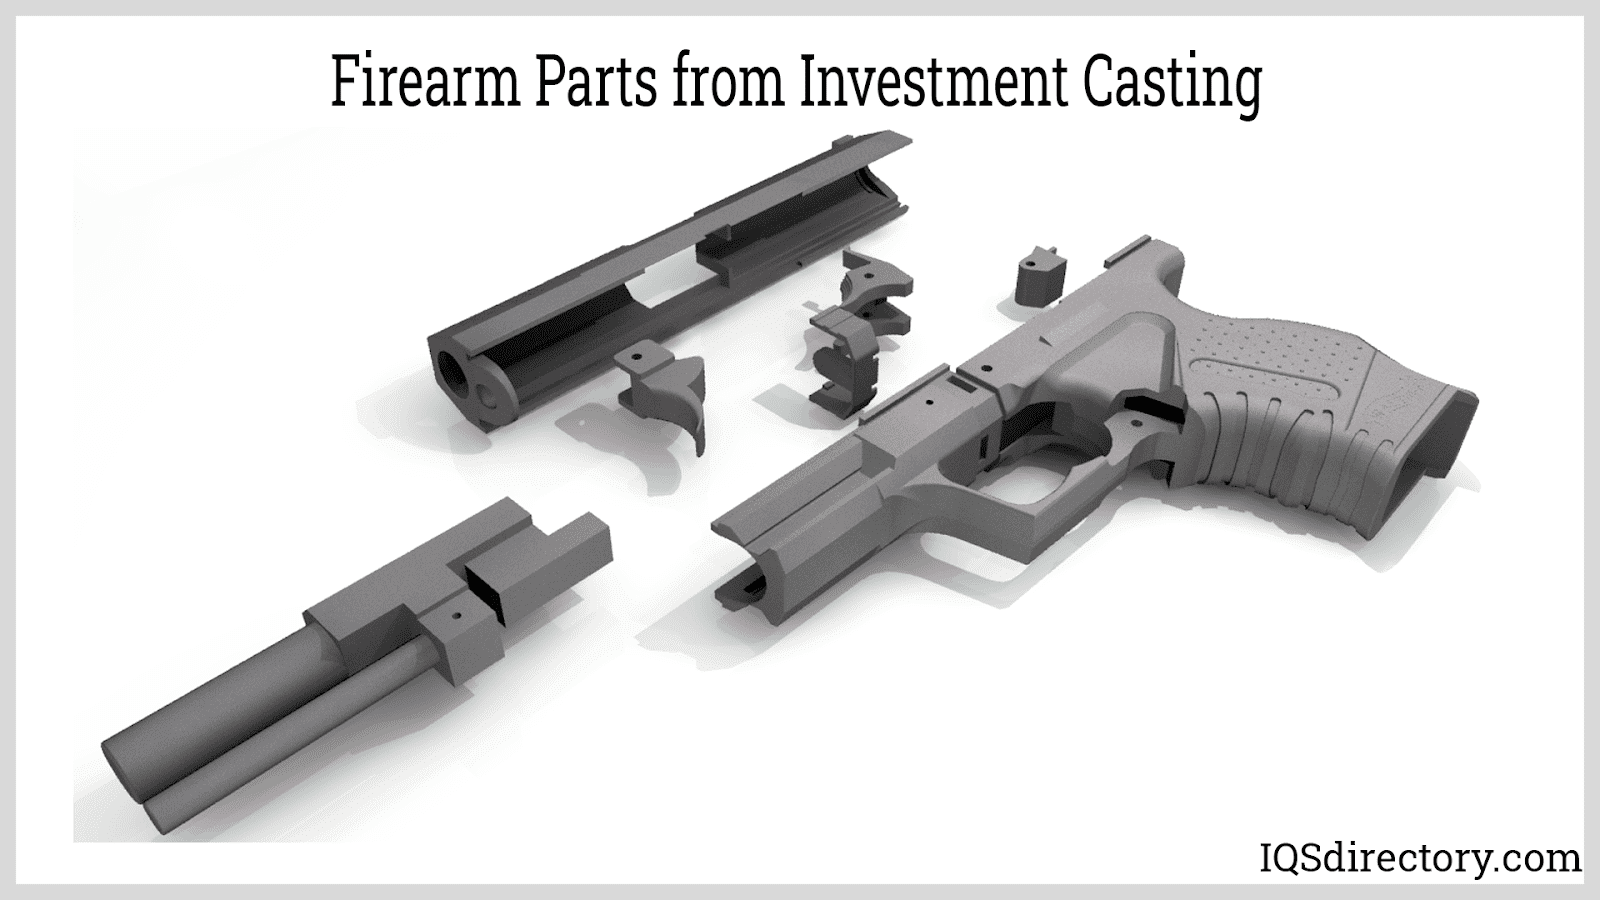 Firearm Parts from Investment Casting